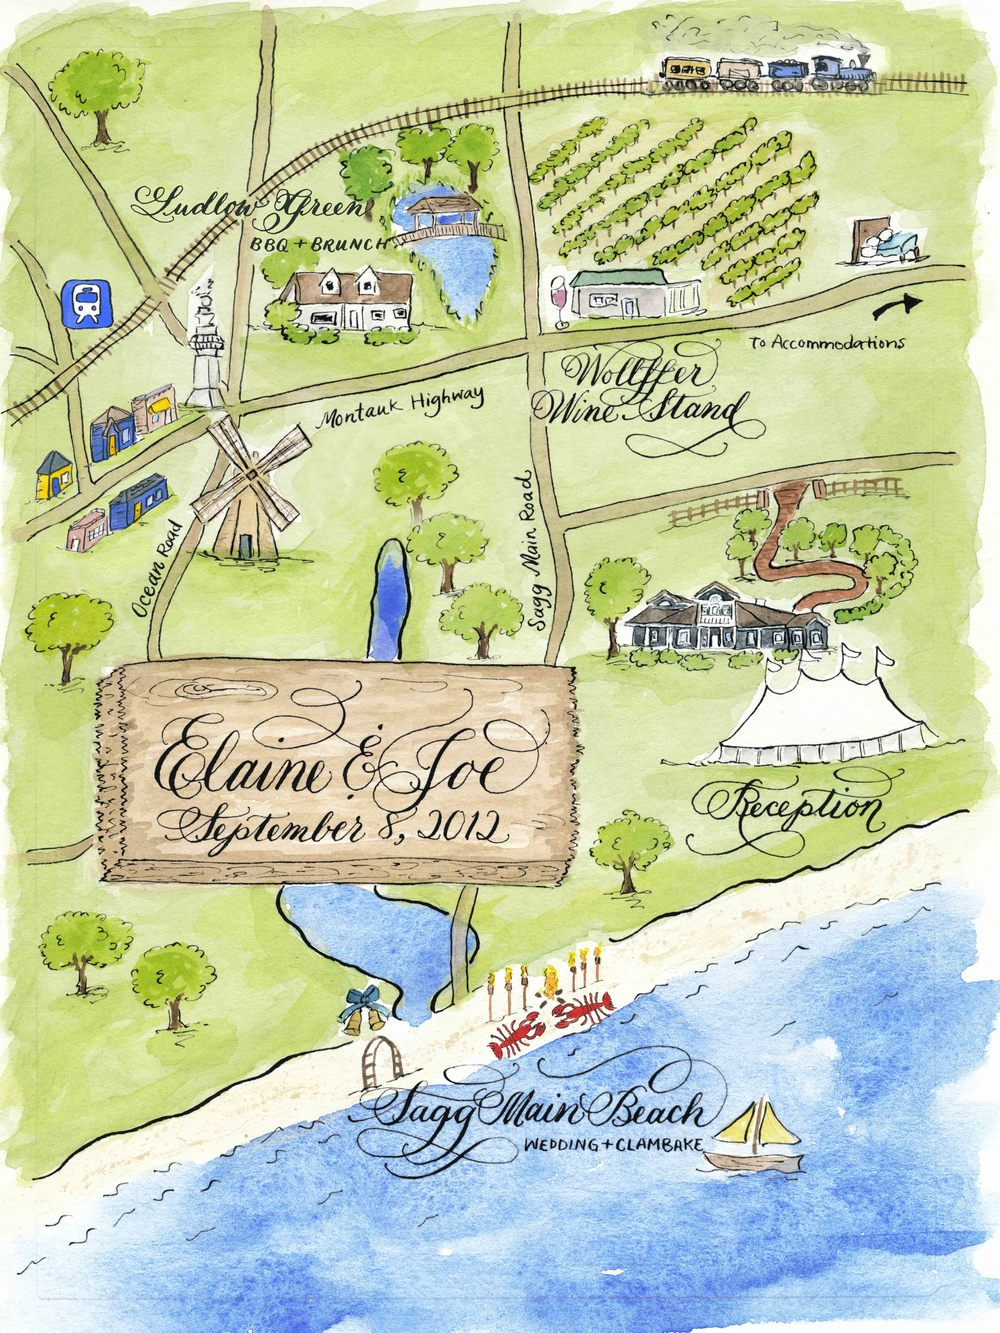 Elaine new york watercolor calligraphy wedding map 2.jpg